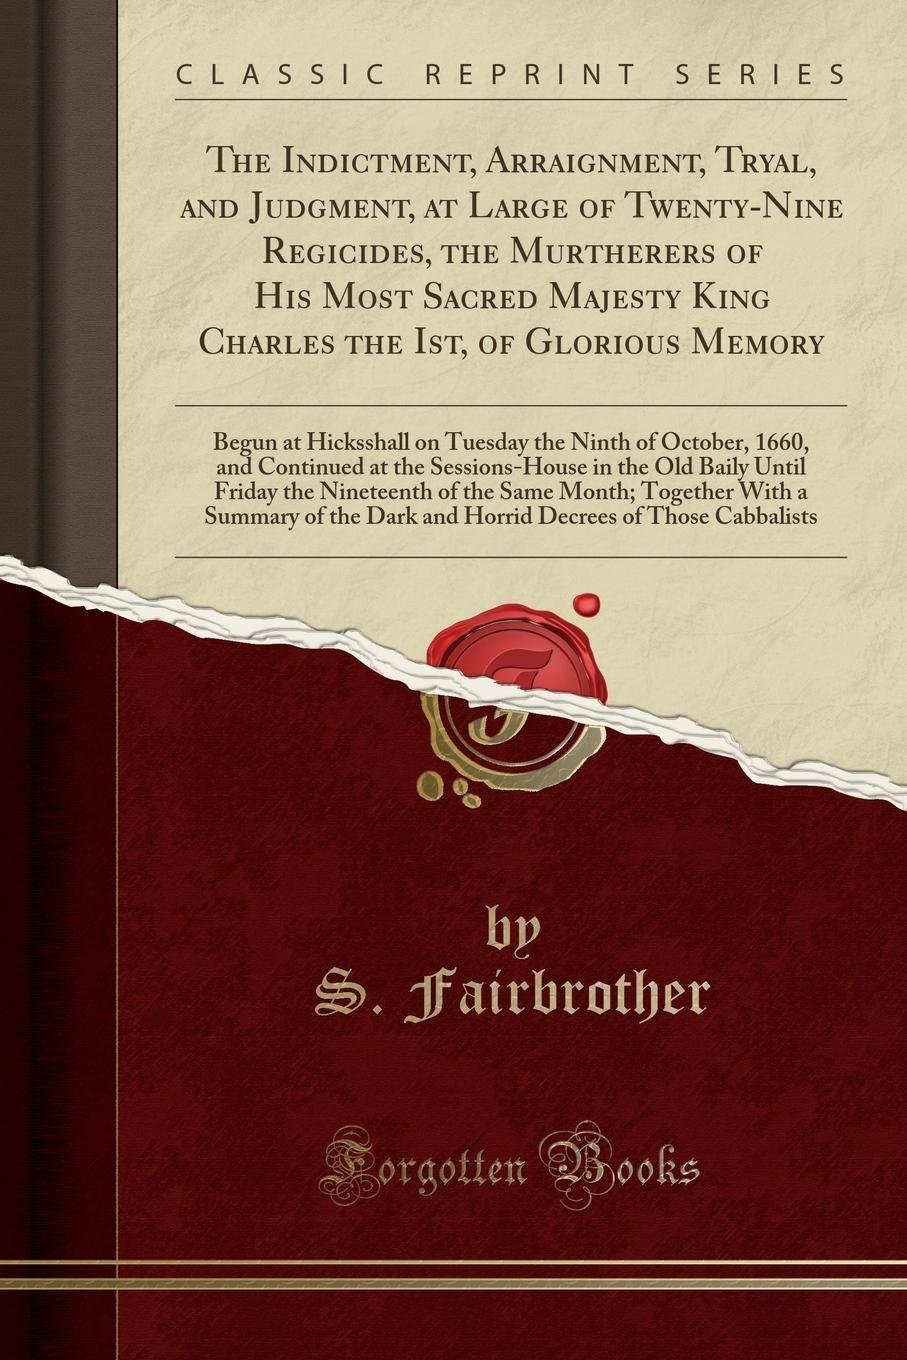 Download The Indictment, Arraignment, Tryal, and Judgment, at Large of Twenty-Nine Regicides, the Murtherers of His Most Sacred Majesty King Charles the Ist, ... of October, 1660, and Continued at the Sessio pdf epub